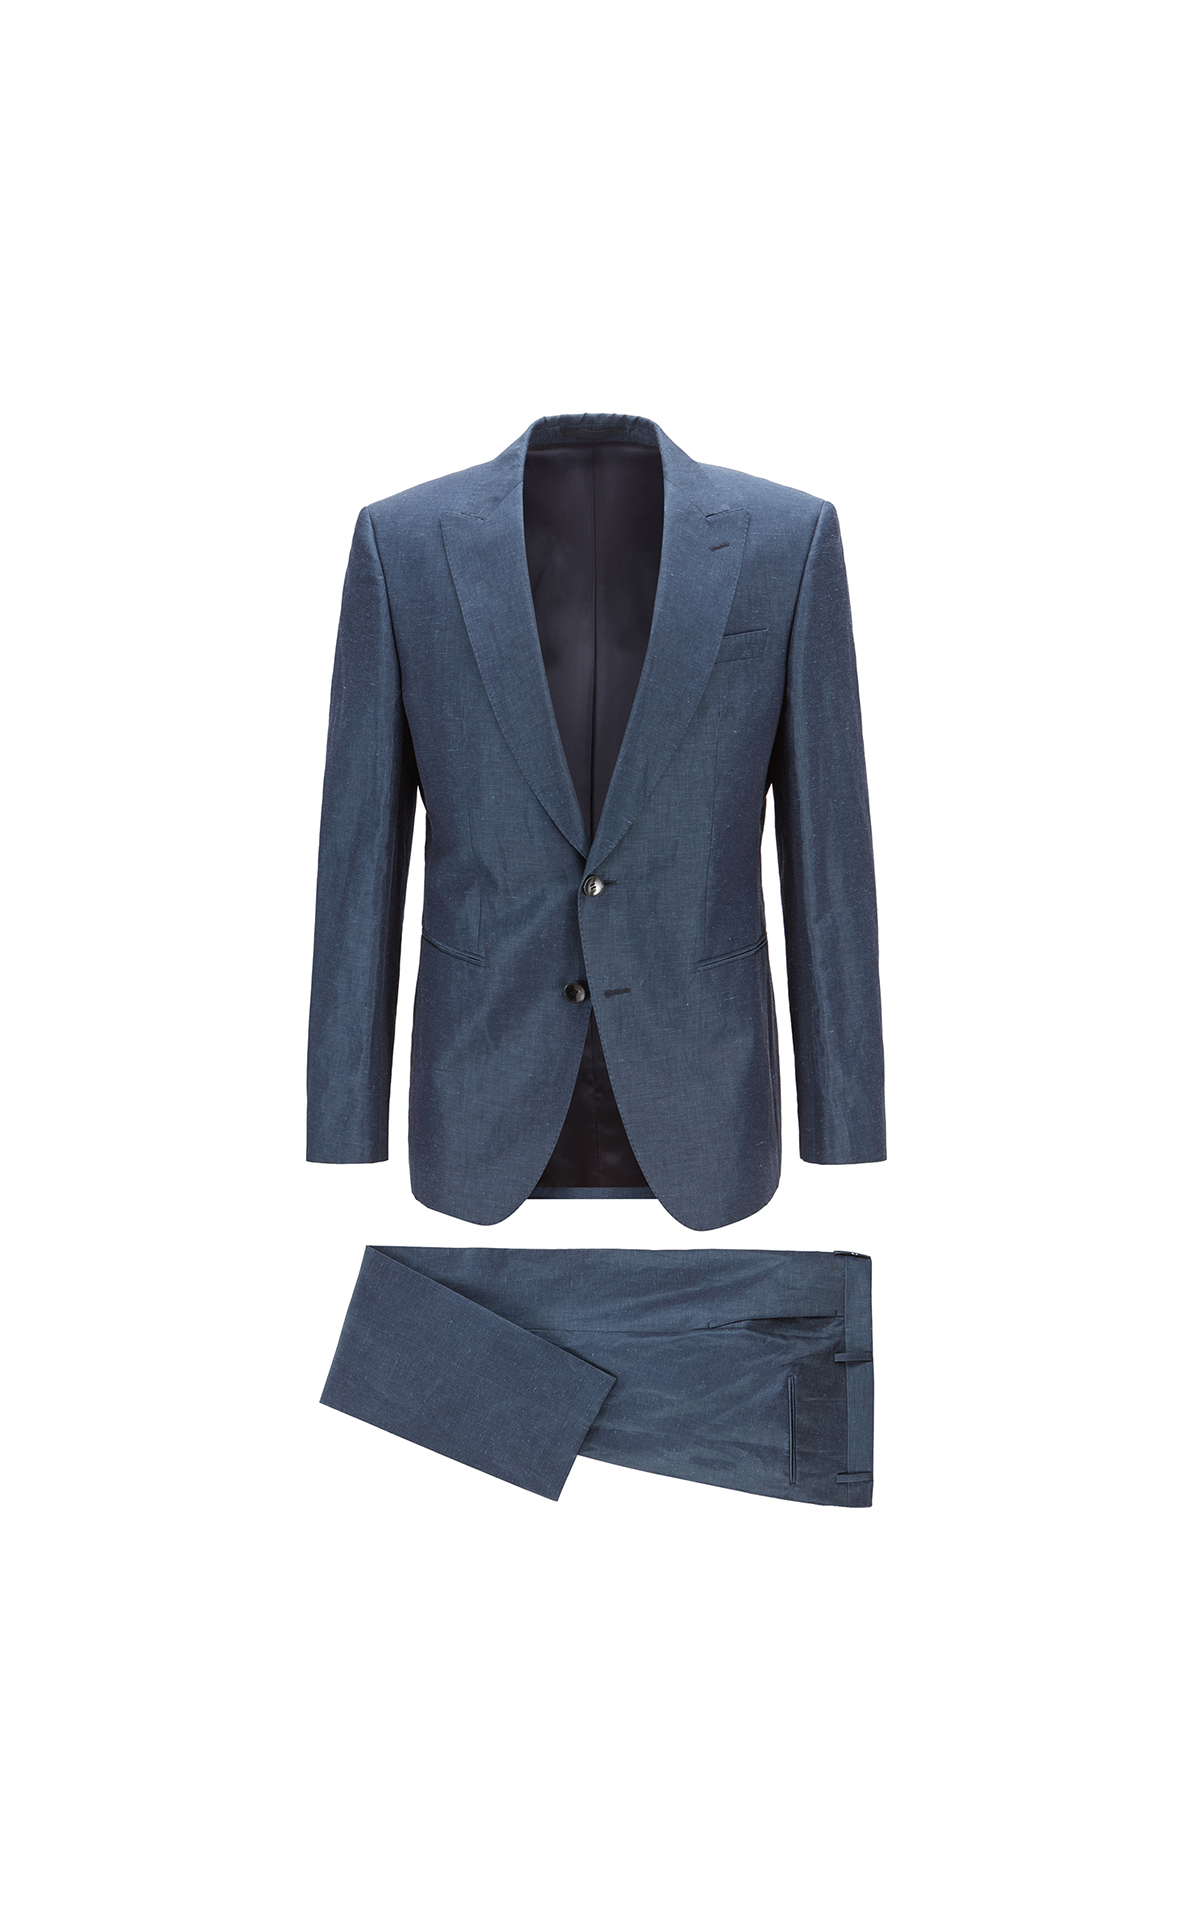 BOSS Men's Italian-made slim-fit suit at The Bicester VIllage Shopping Collection